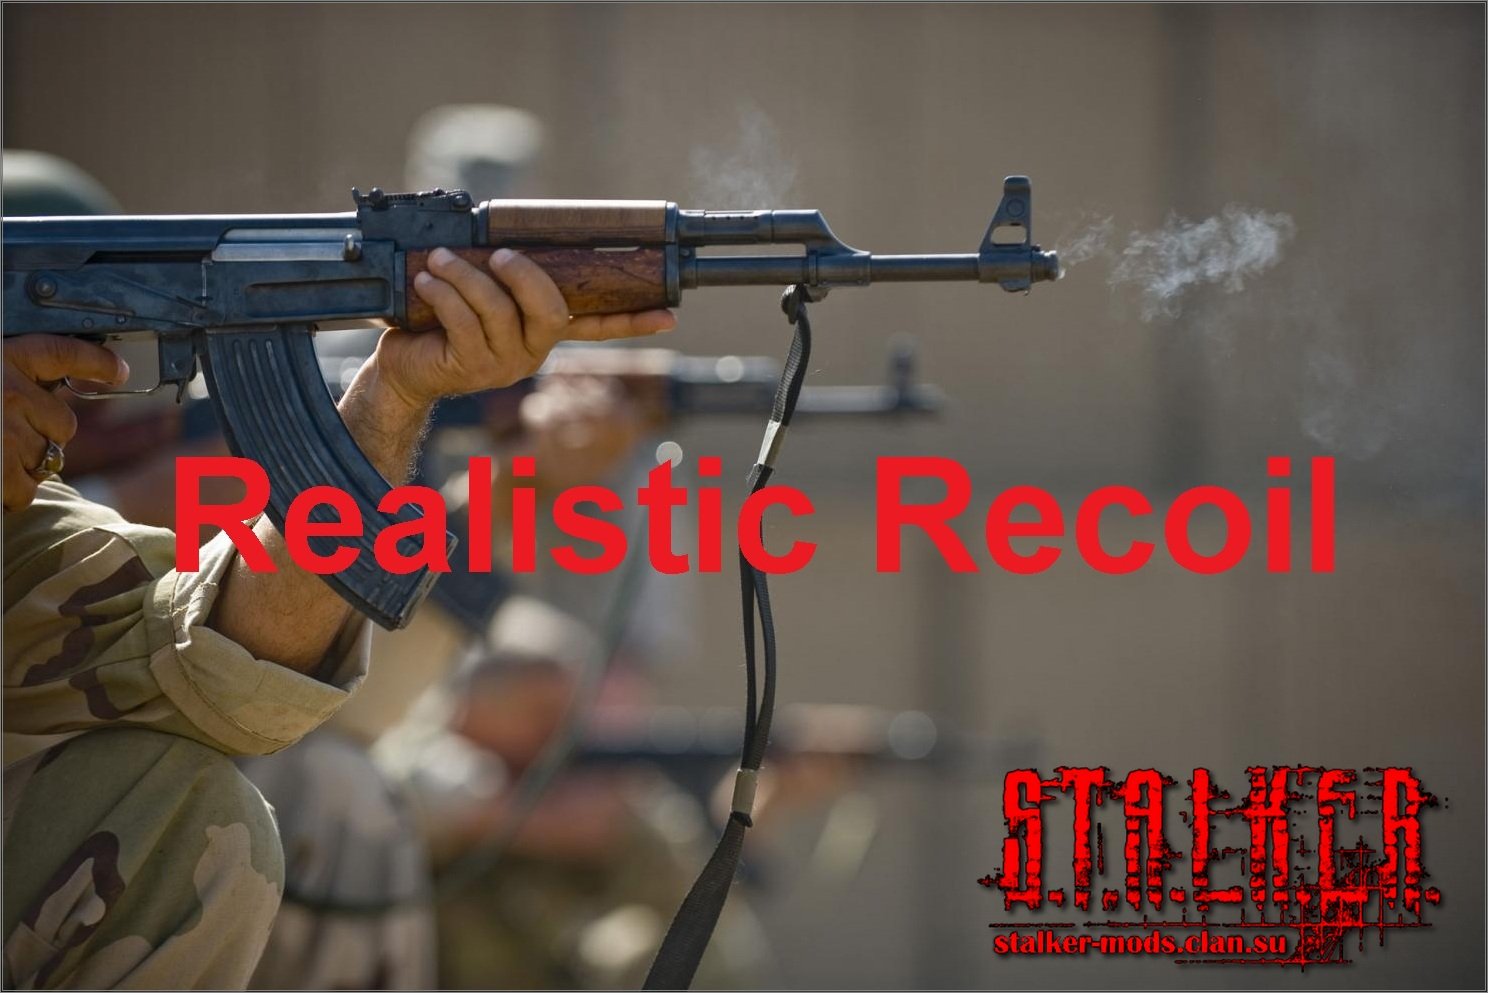 REALISTIC RECOIL